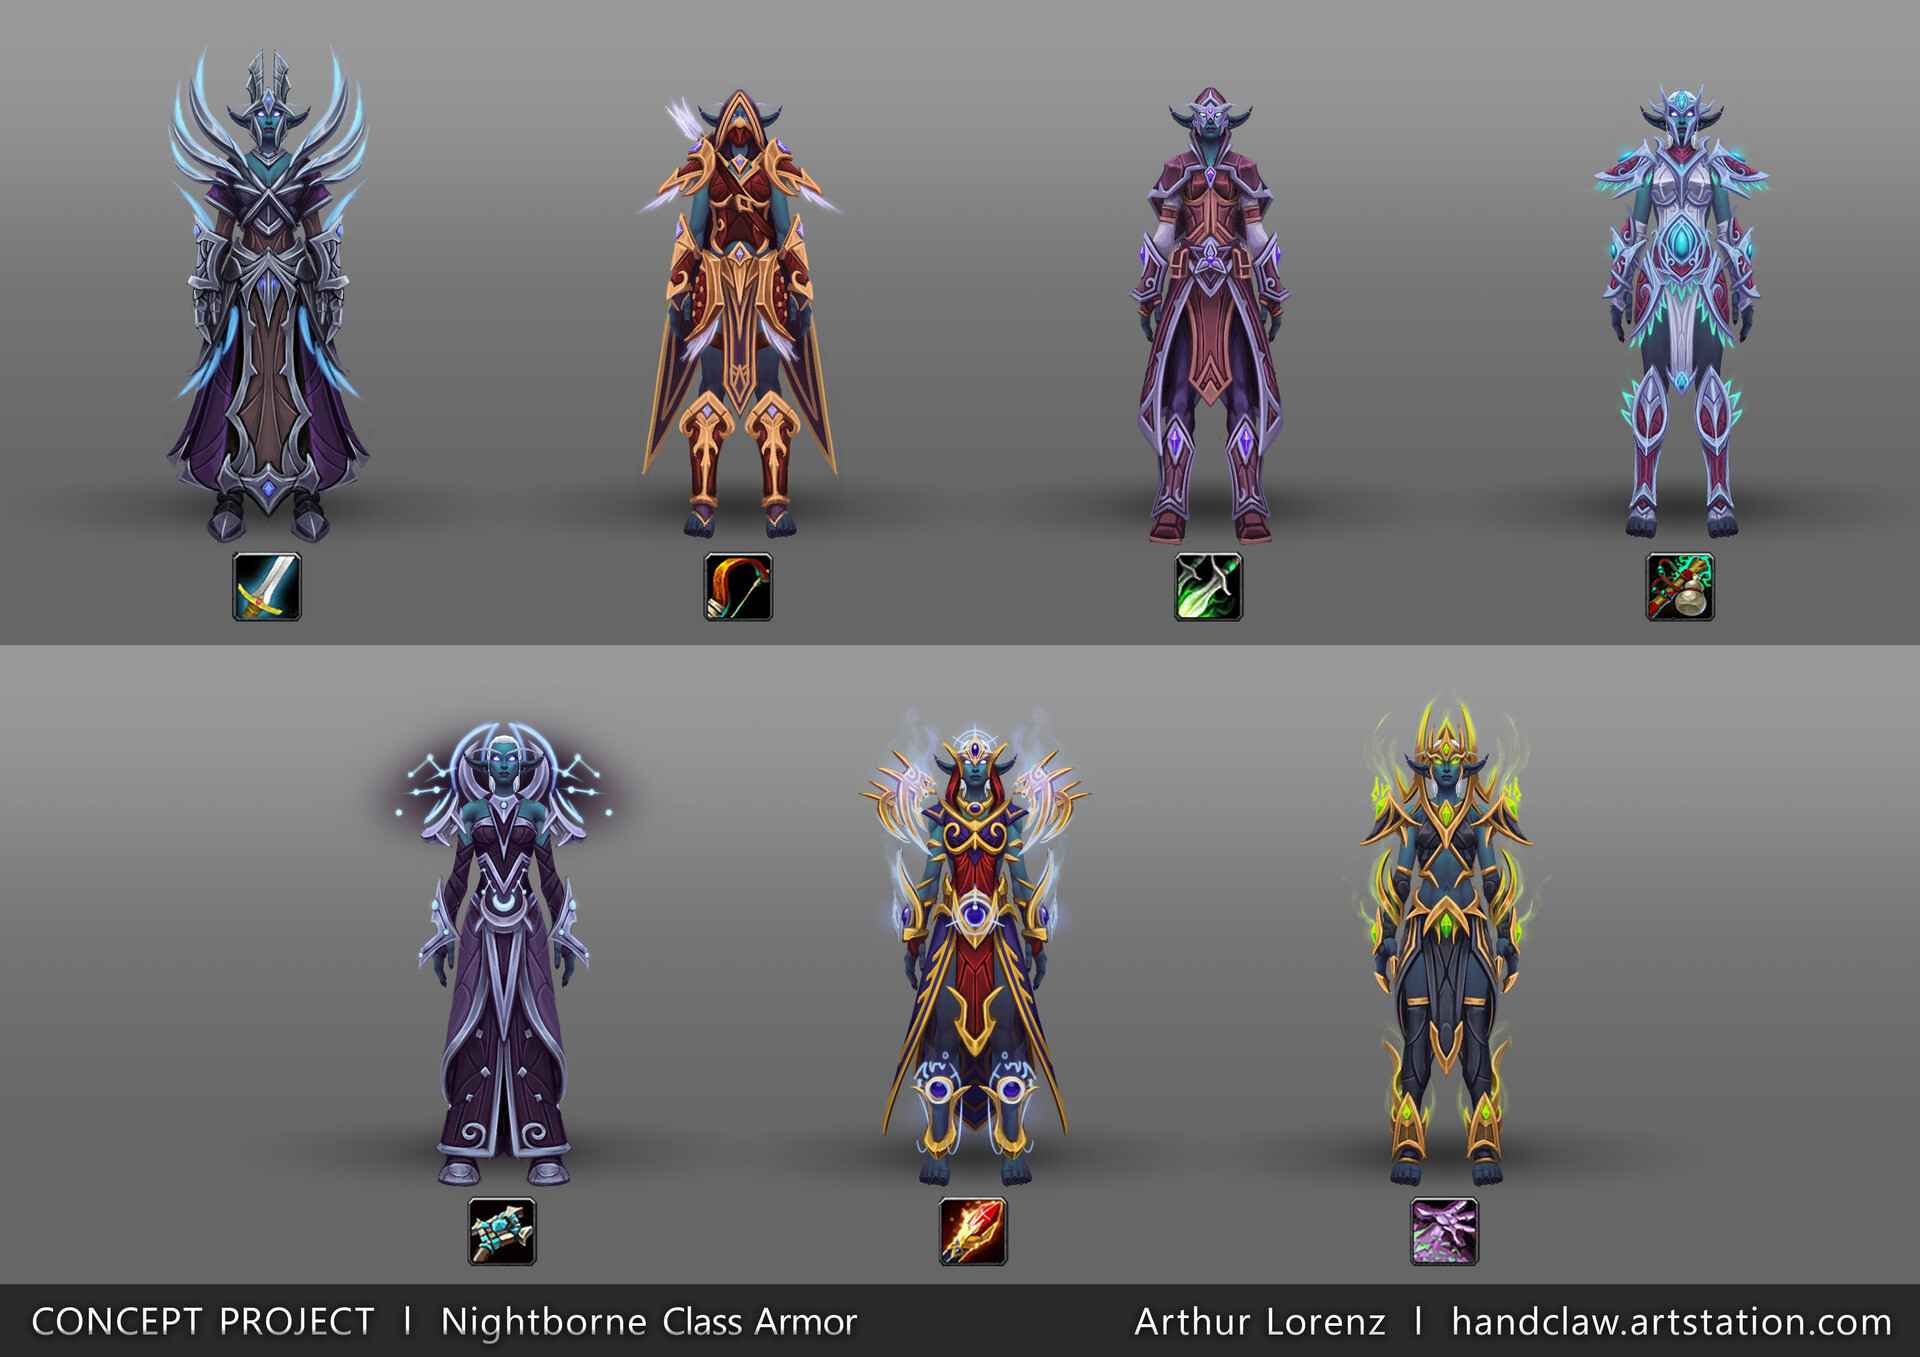 Concepts Unique Heritage Armor For Every Race Class Combo Xpoff #worldofwarcraft #blizzard #hearthstone #wow #warcraft #blizzardcs #gaming. concepts unique heritage armor for